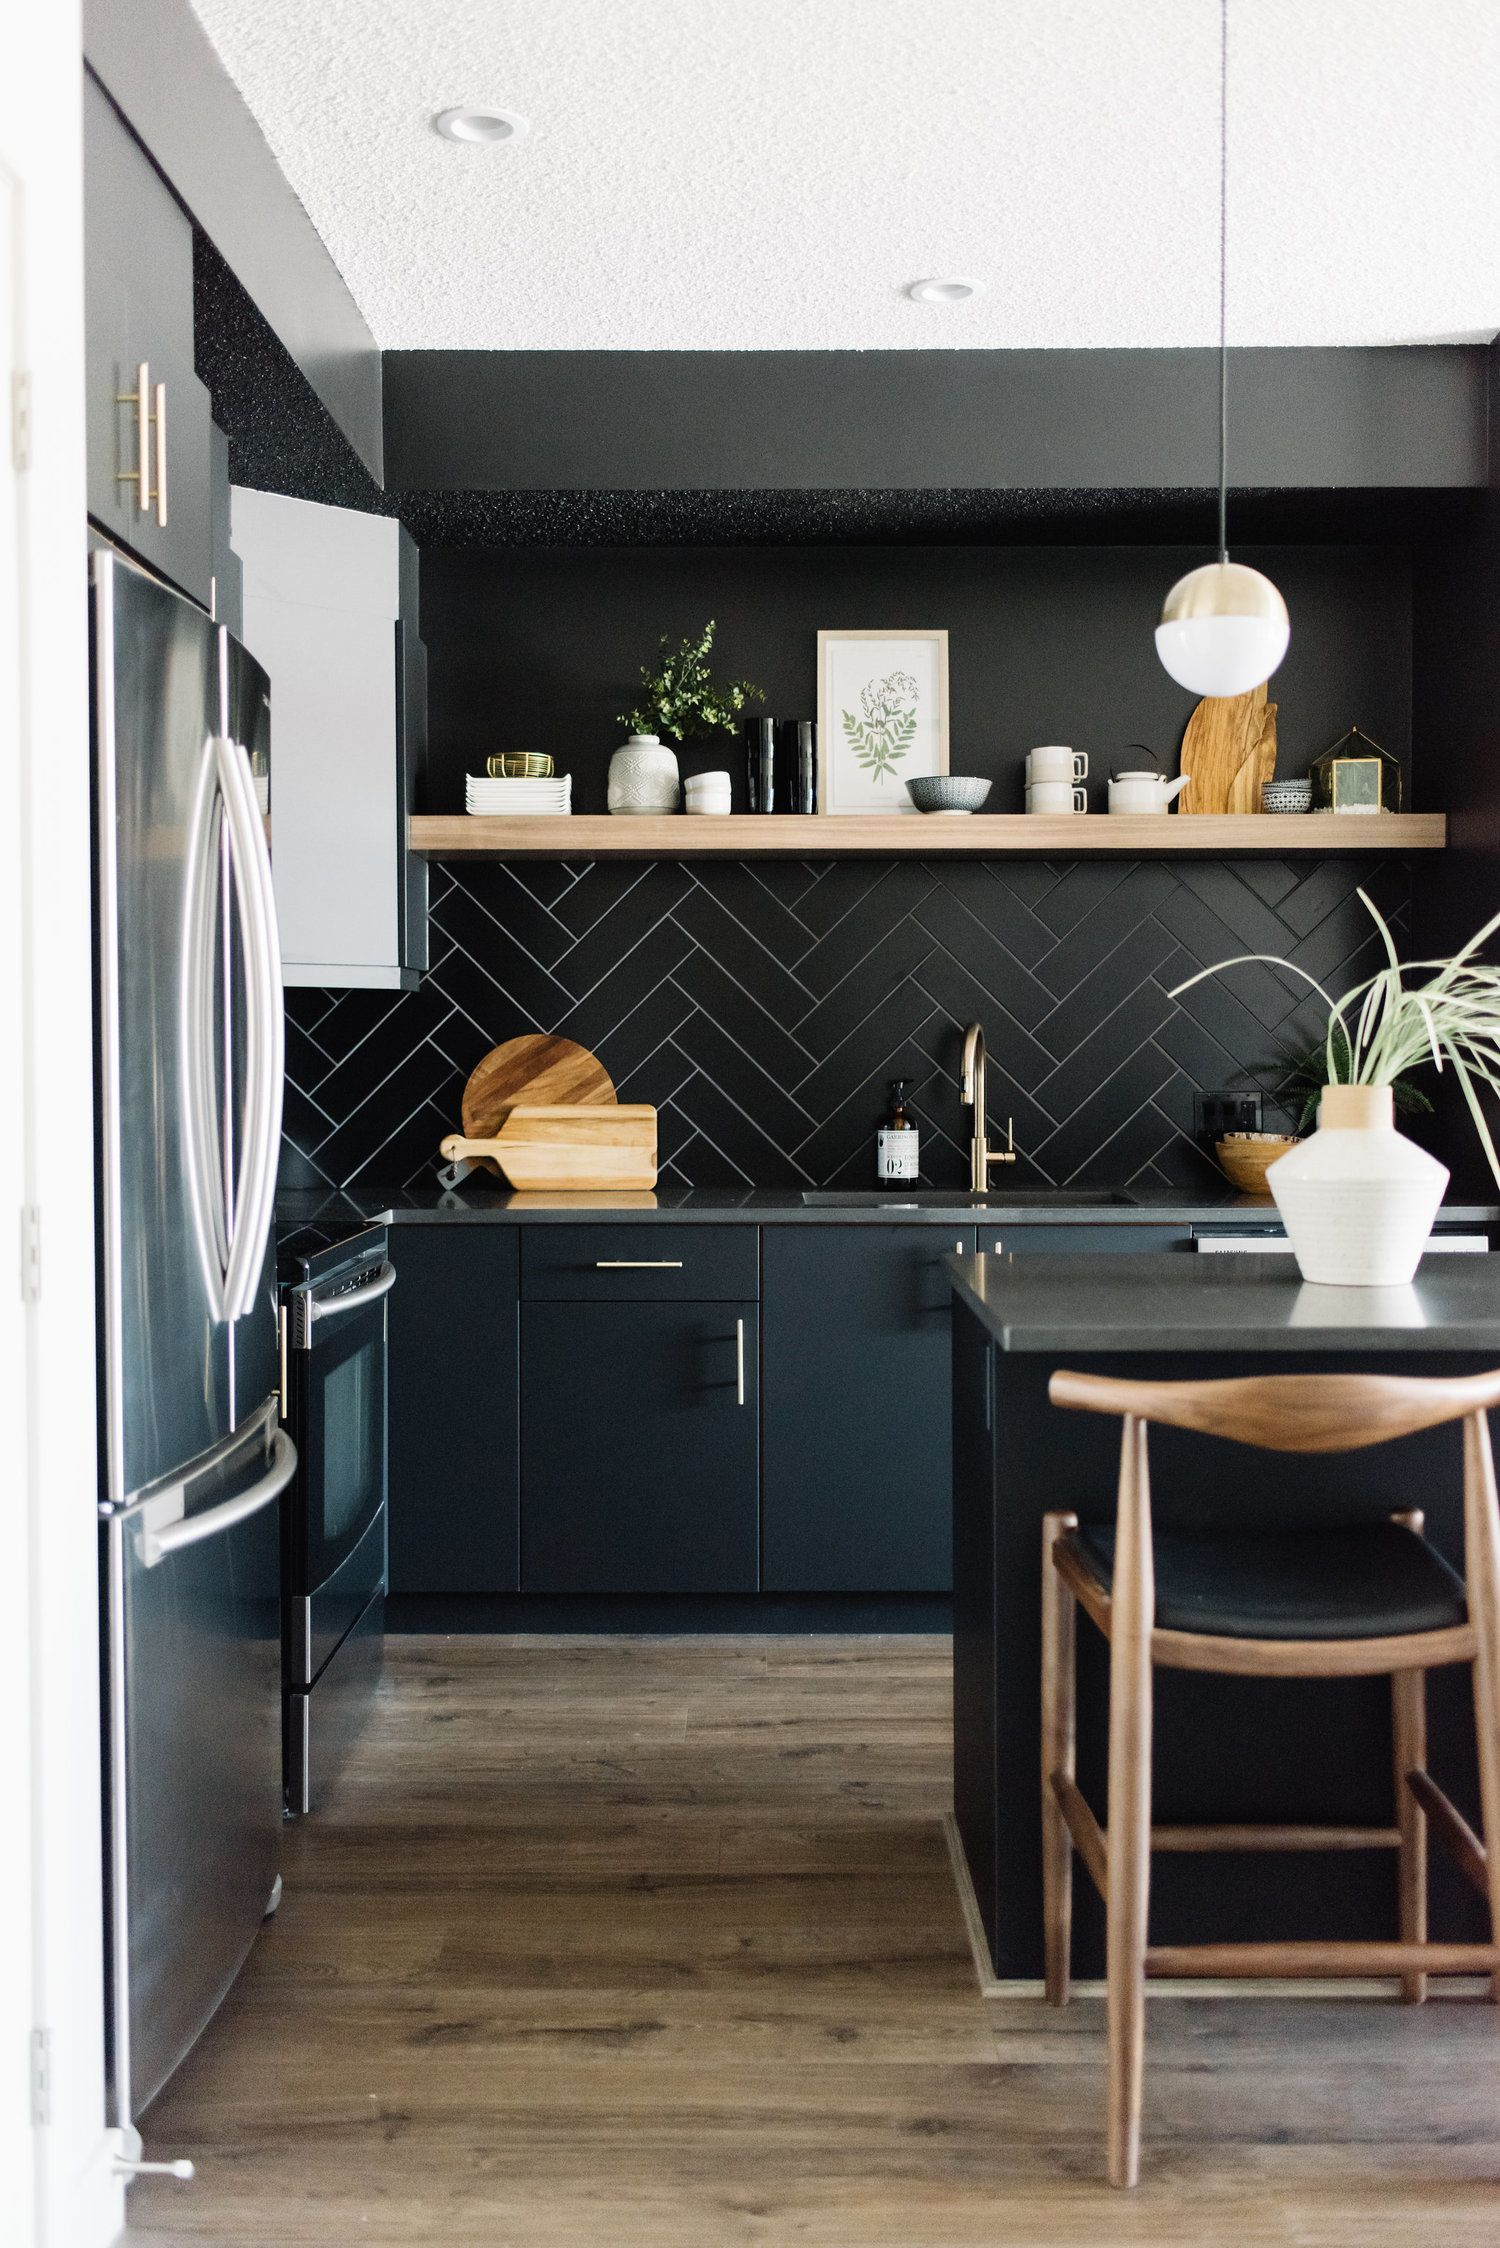 Photo of What's About Kitchen Decor That You Love So Bad?